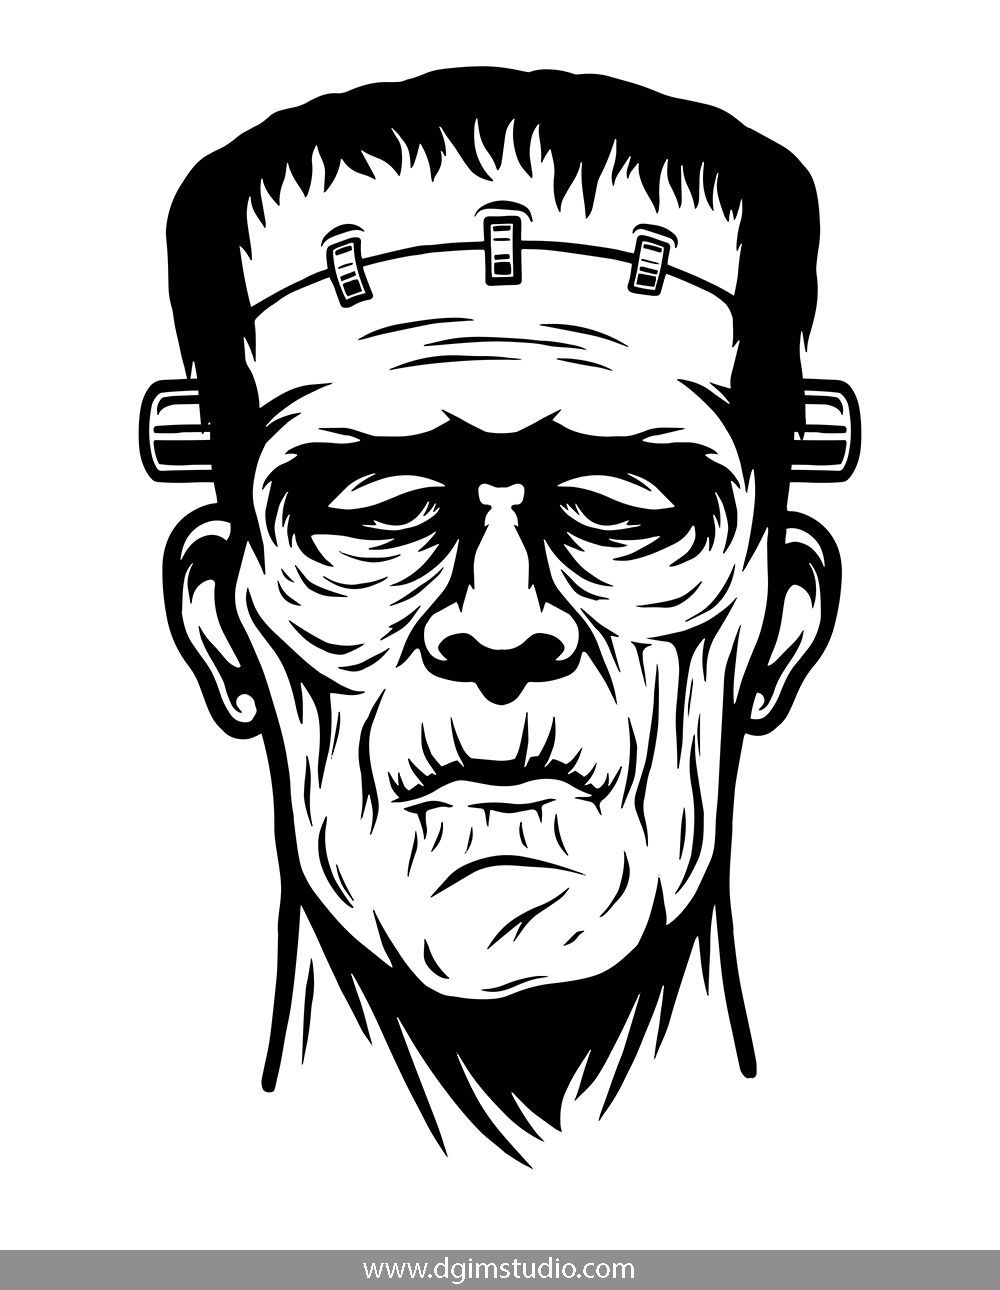 Monochrome Frankenstein Head In Vintage Style Click To The Link To Find More Apparel Design Frankenstein Art Monochrome Illustration Frankenstein Illustration